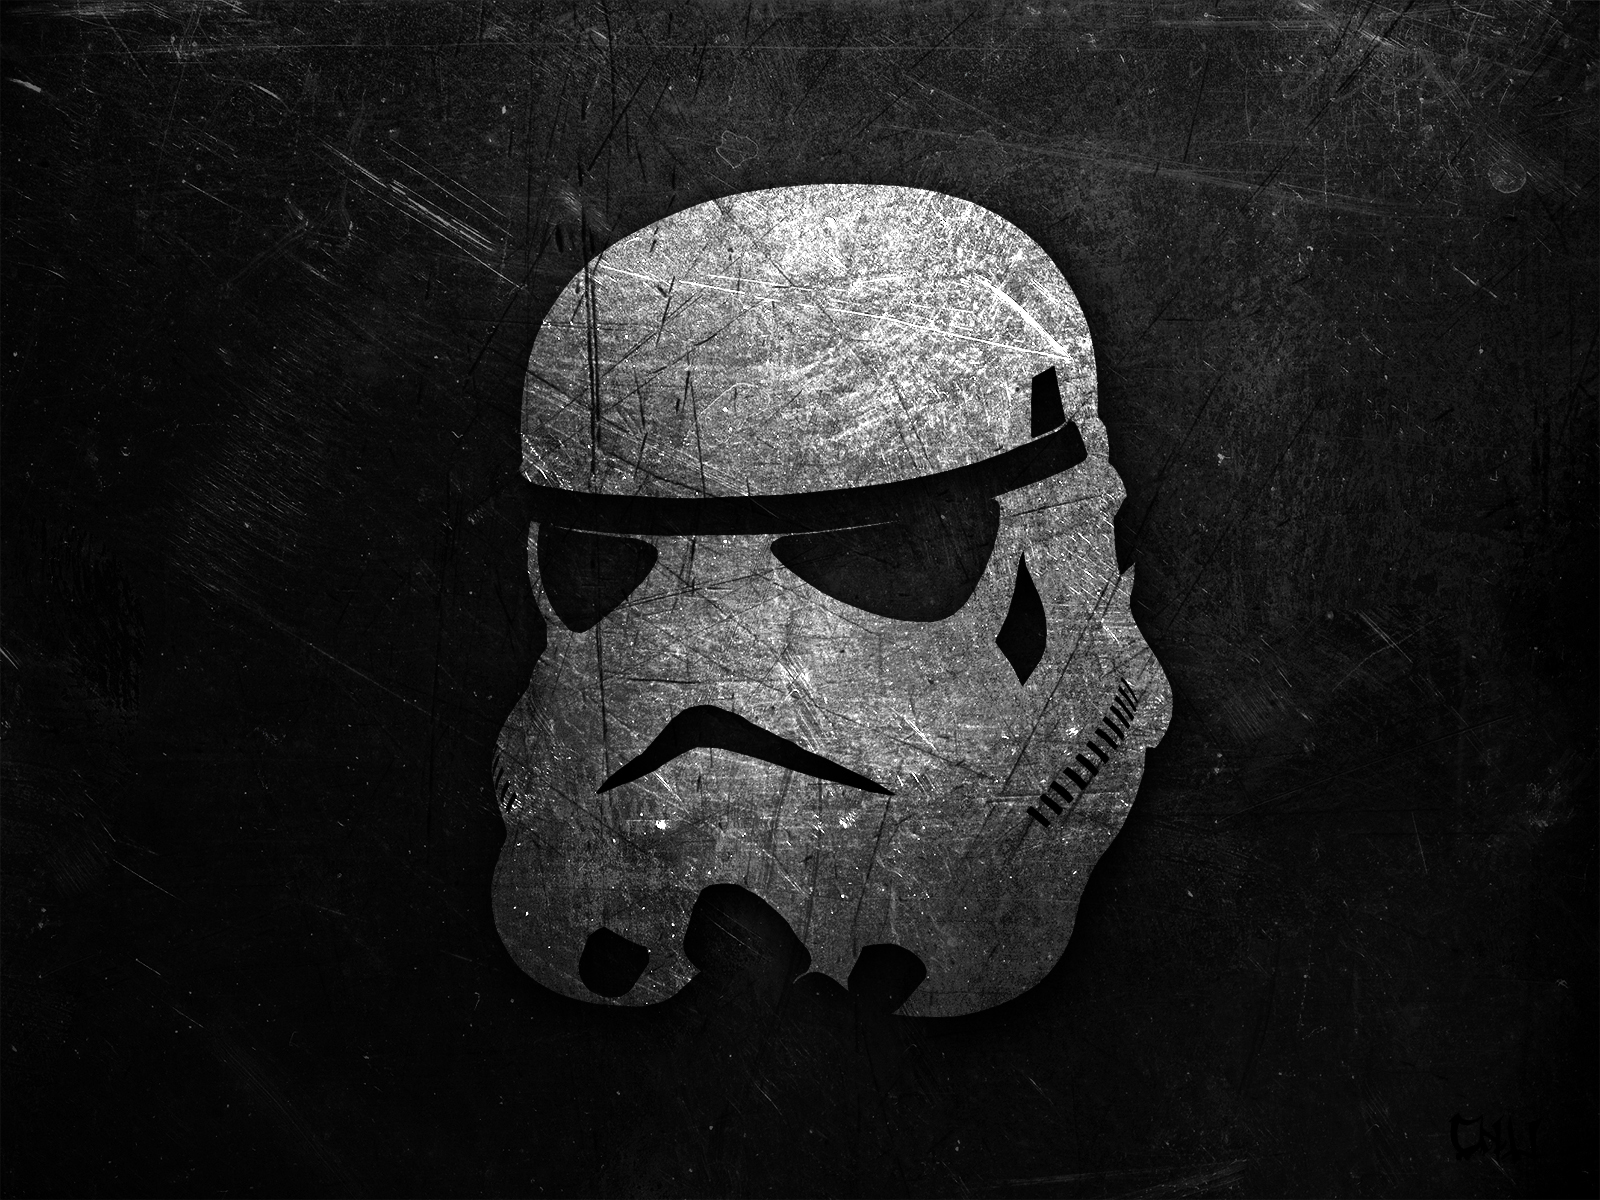 Free Download Stormtrooper Wallpaper Hd Wallpapers Plus 1600x1200